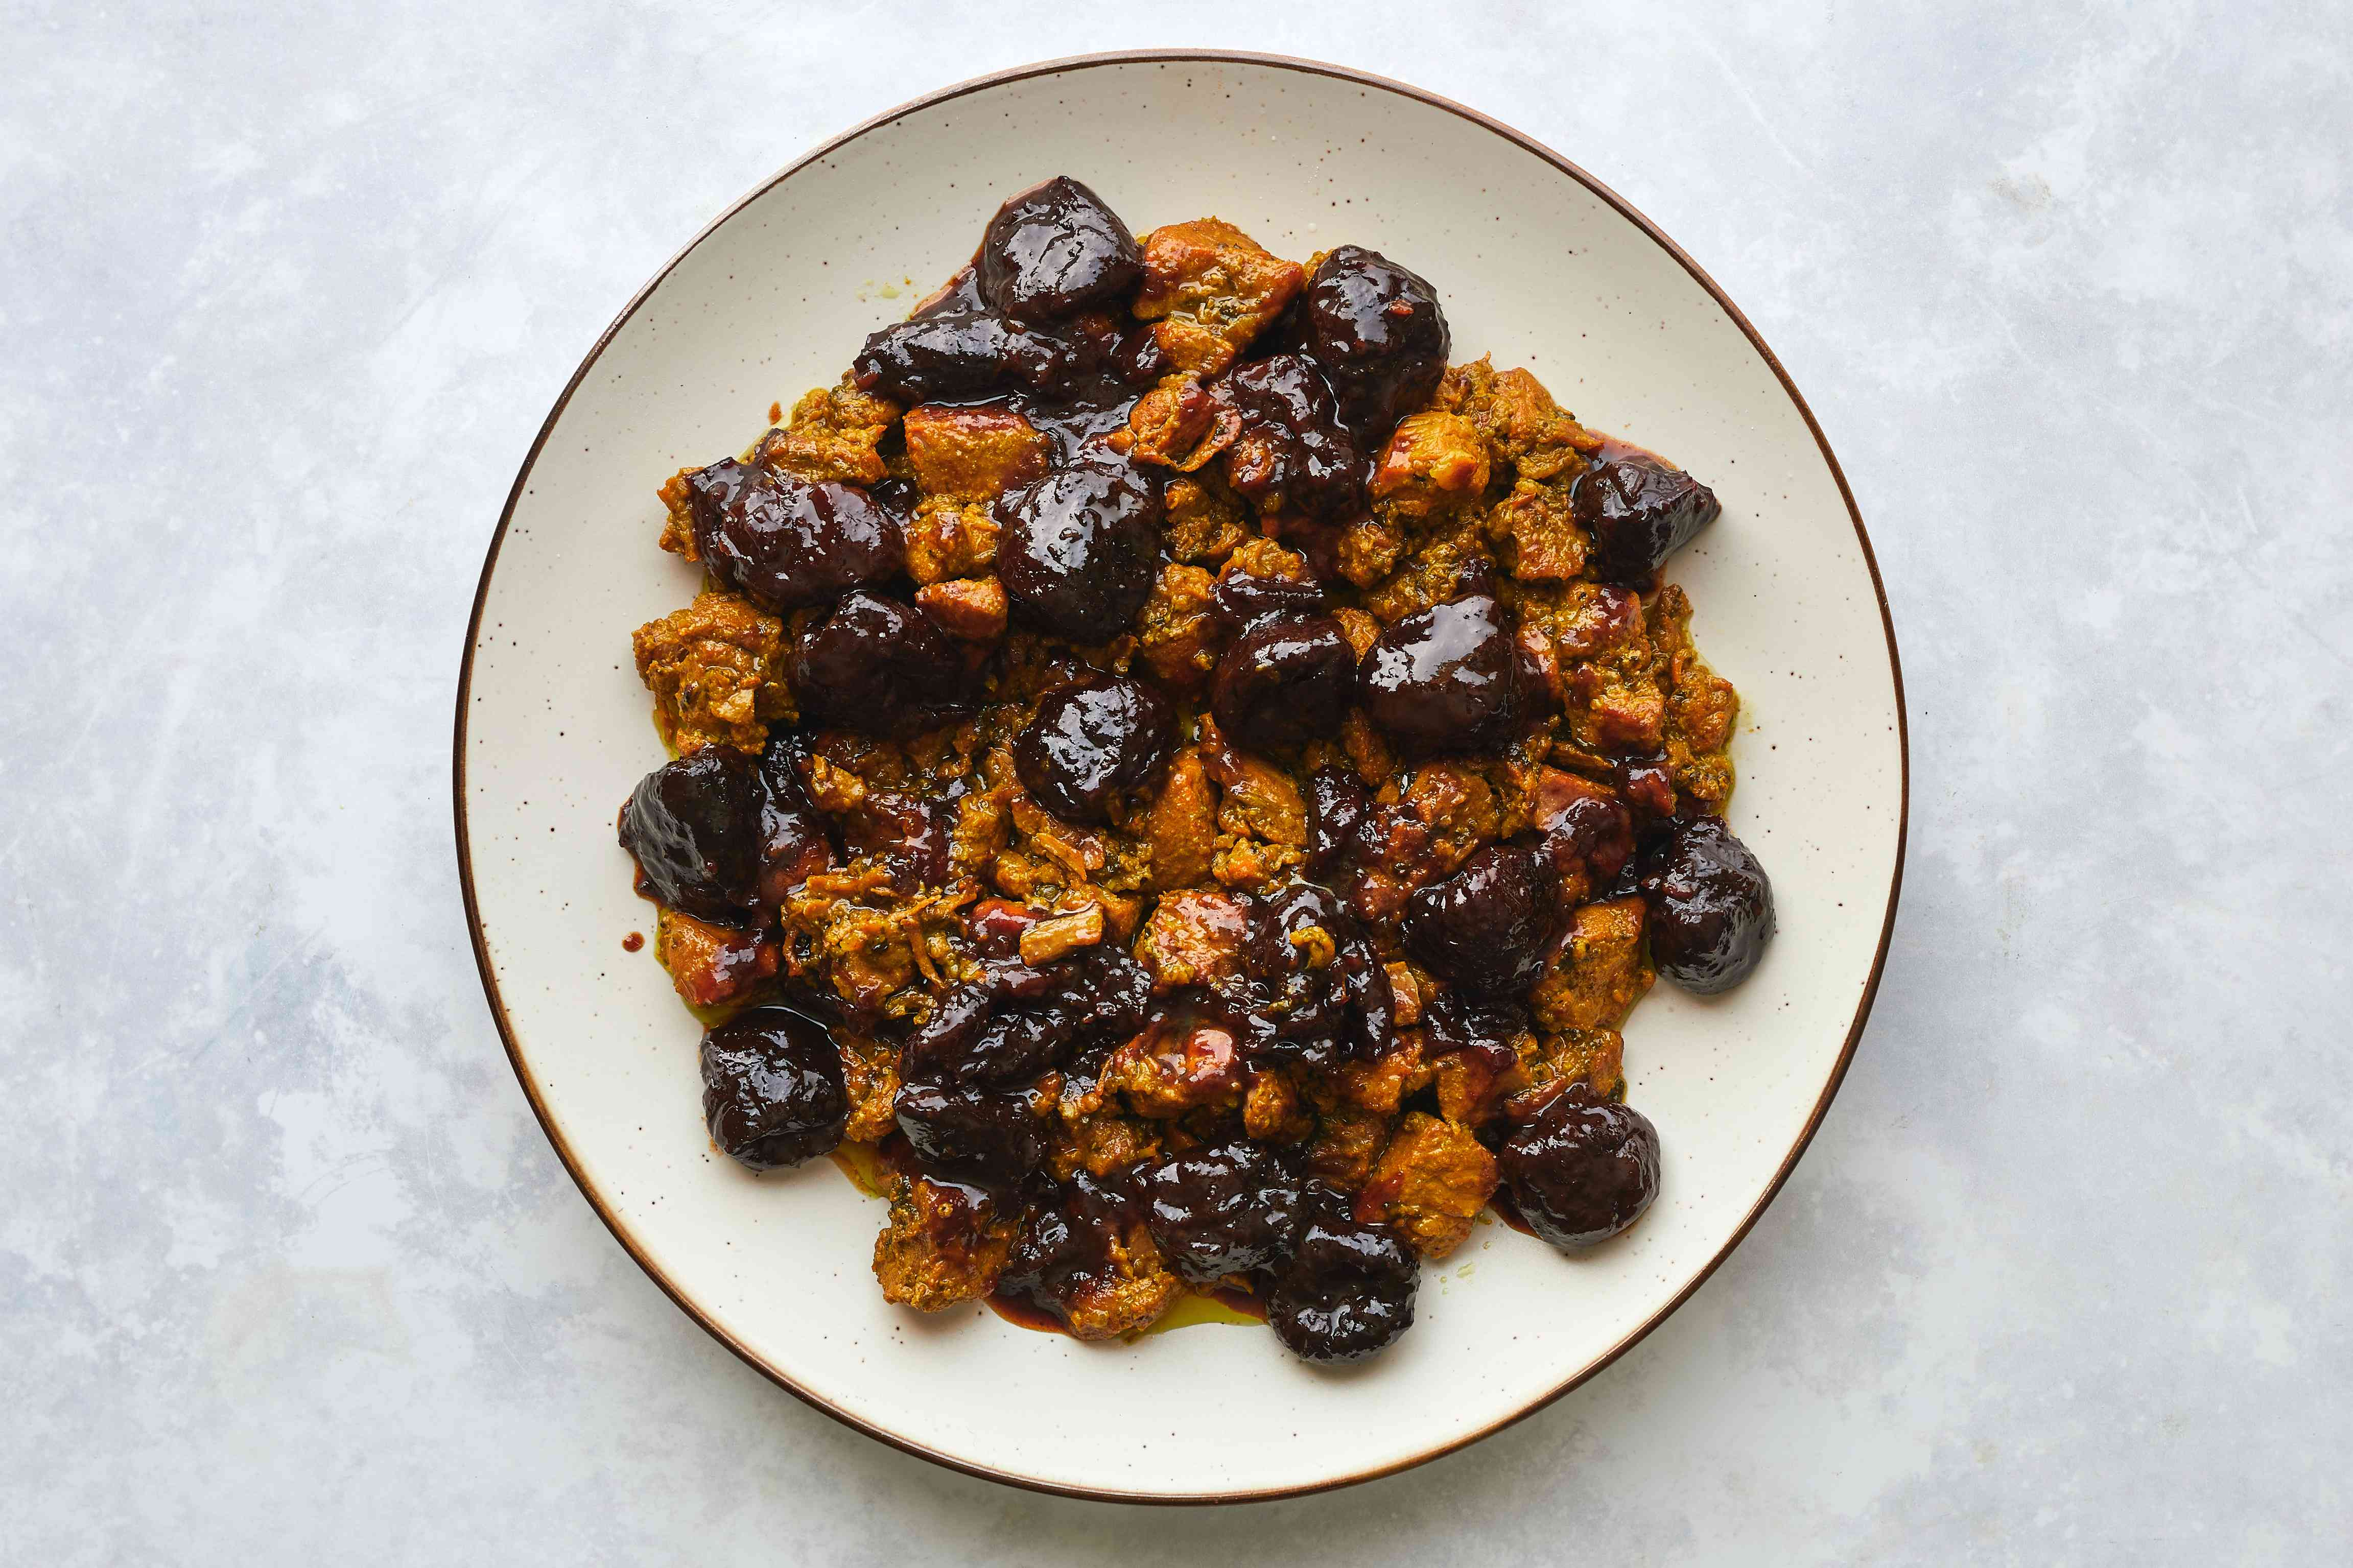 Pressure Cooker Moroccan Lamb or Beef Tagine With Prunes on a plate